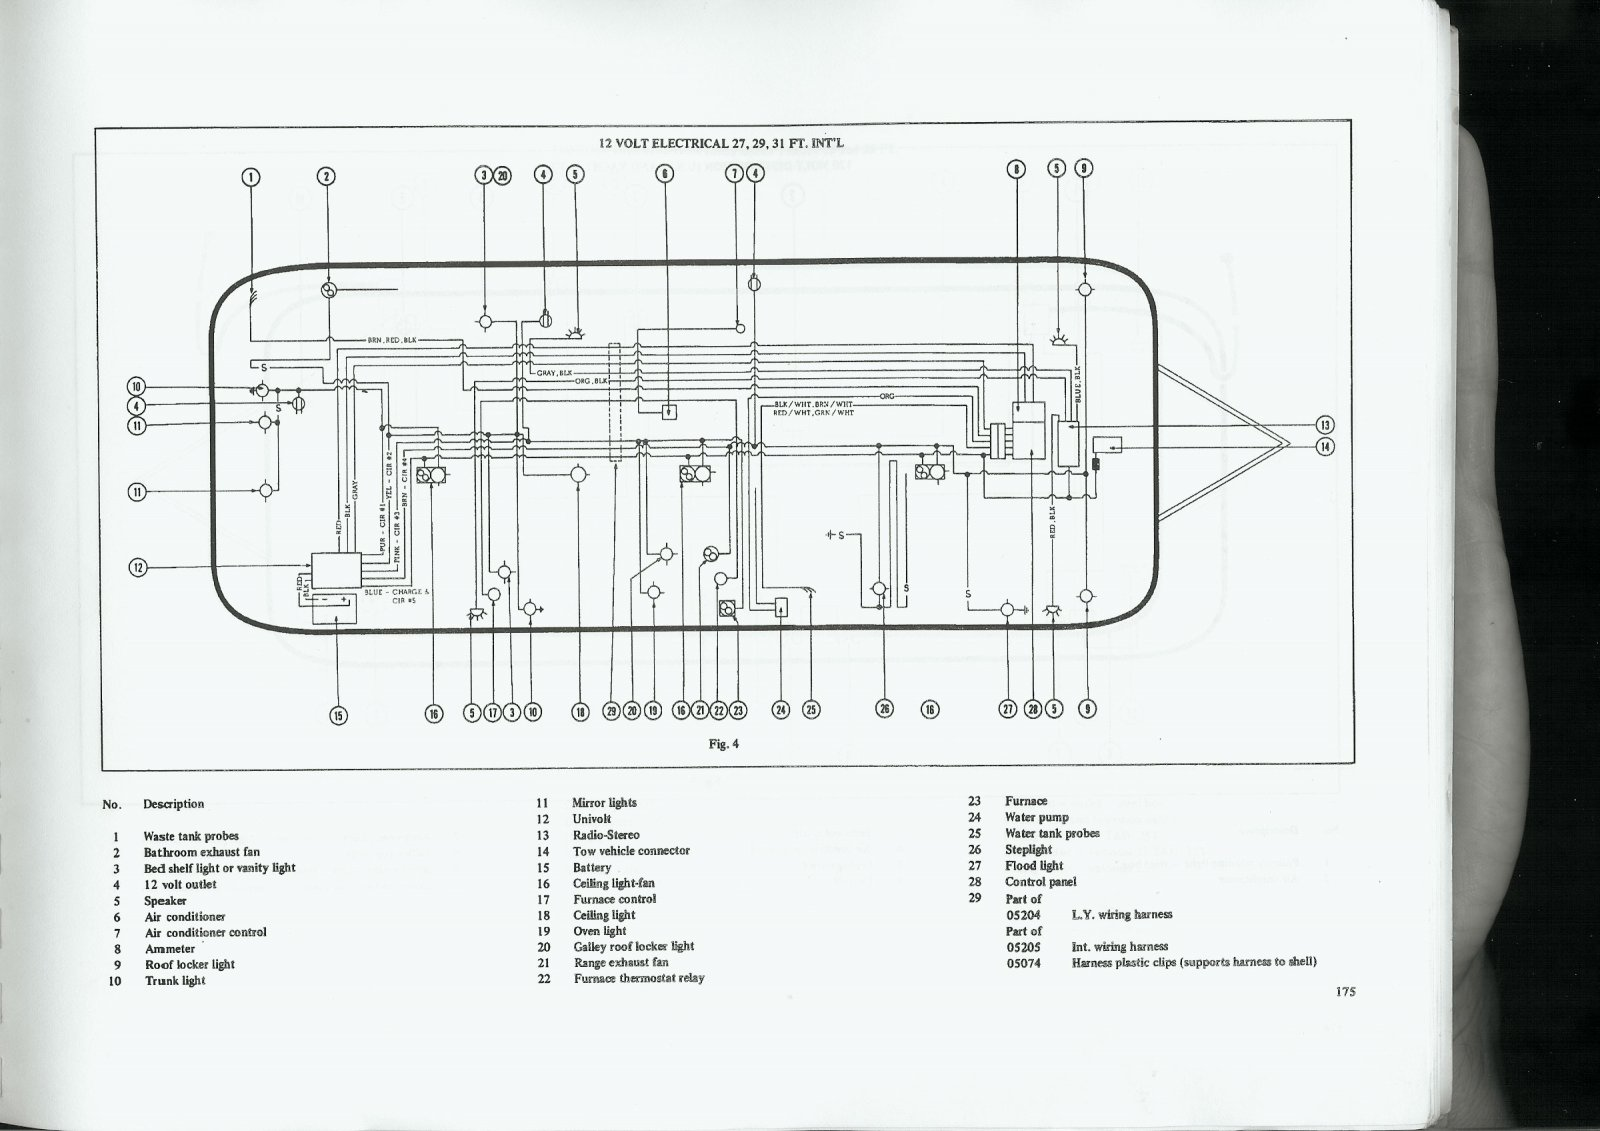 71 Overlander Wiring Diagram Airstream Forums 12 Volt Wire Harness Click Image For Larger Version Name Views 583